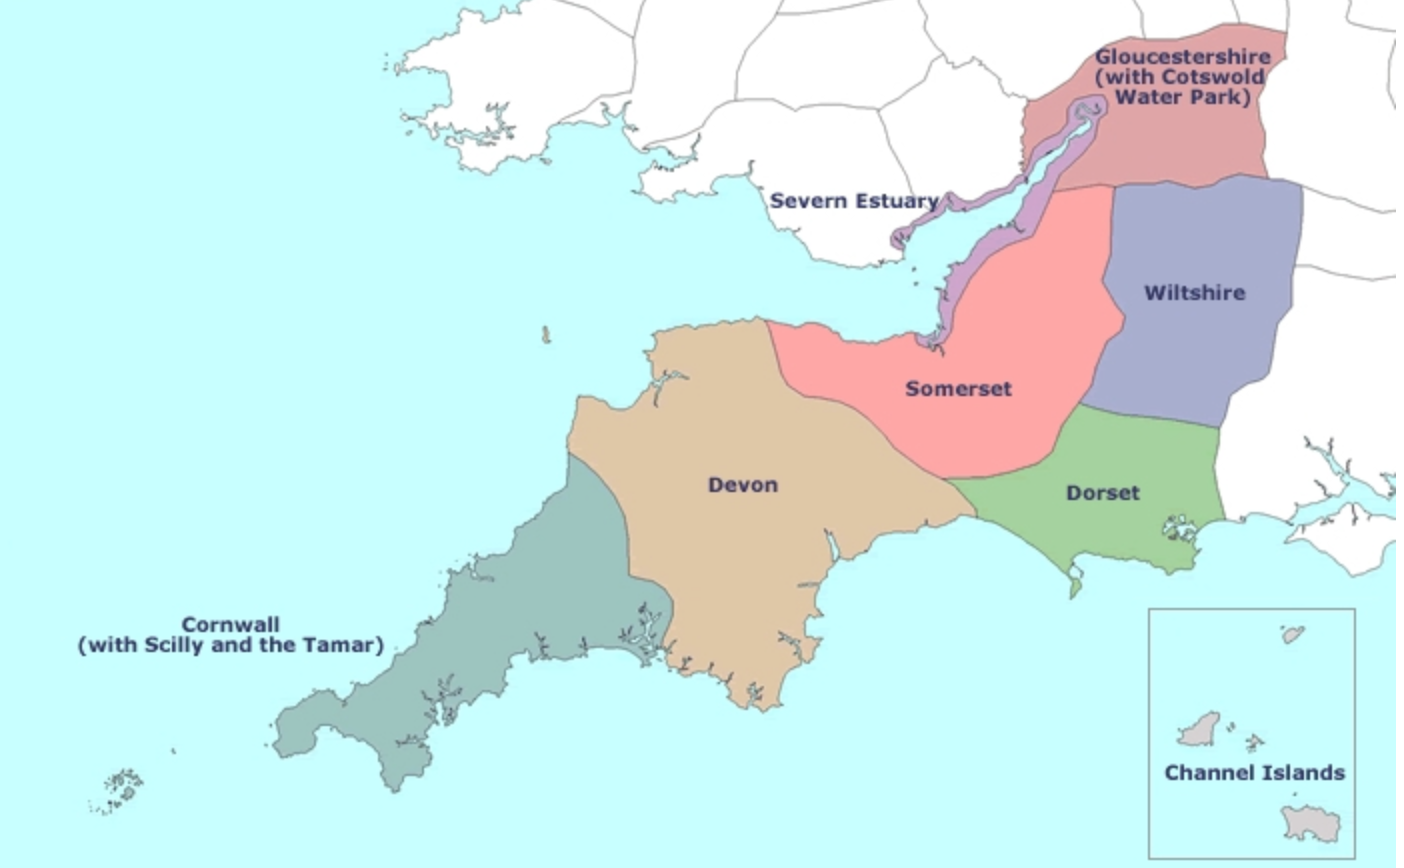 South West Region map